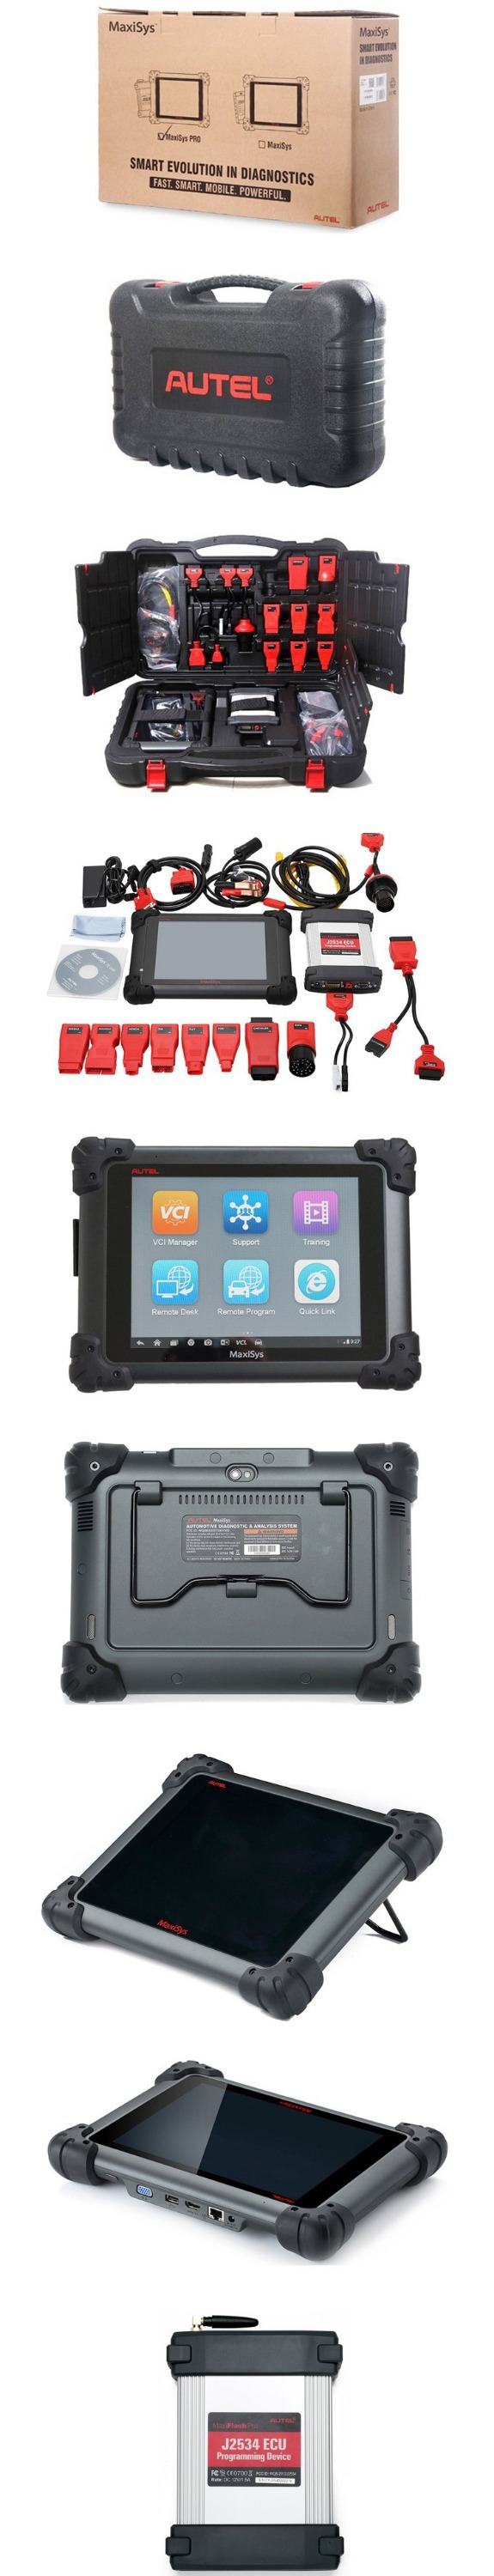 Best Price Autel Maxisys Pro Ms908p Free Update Online J2534 Auto Ecu  Programming Tool For Bmw/mercedes Autel 908 Pro - Buy Auto Ecu Programming